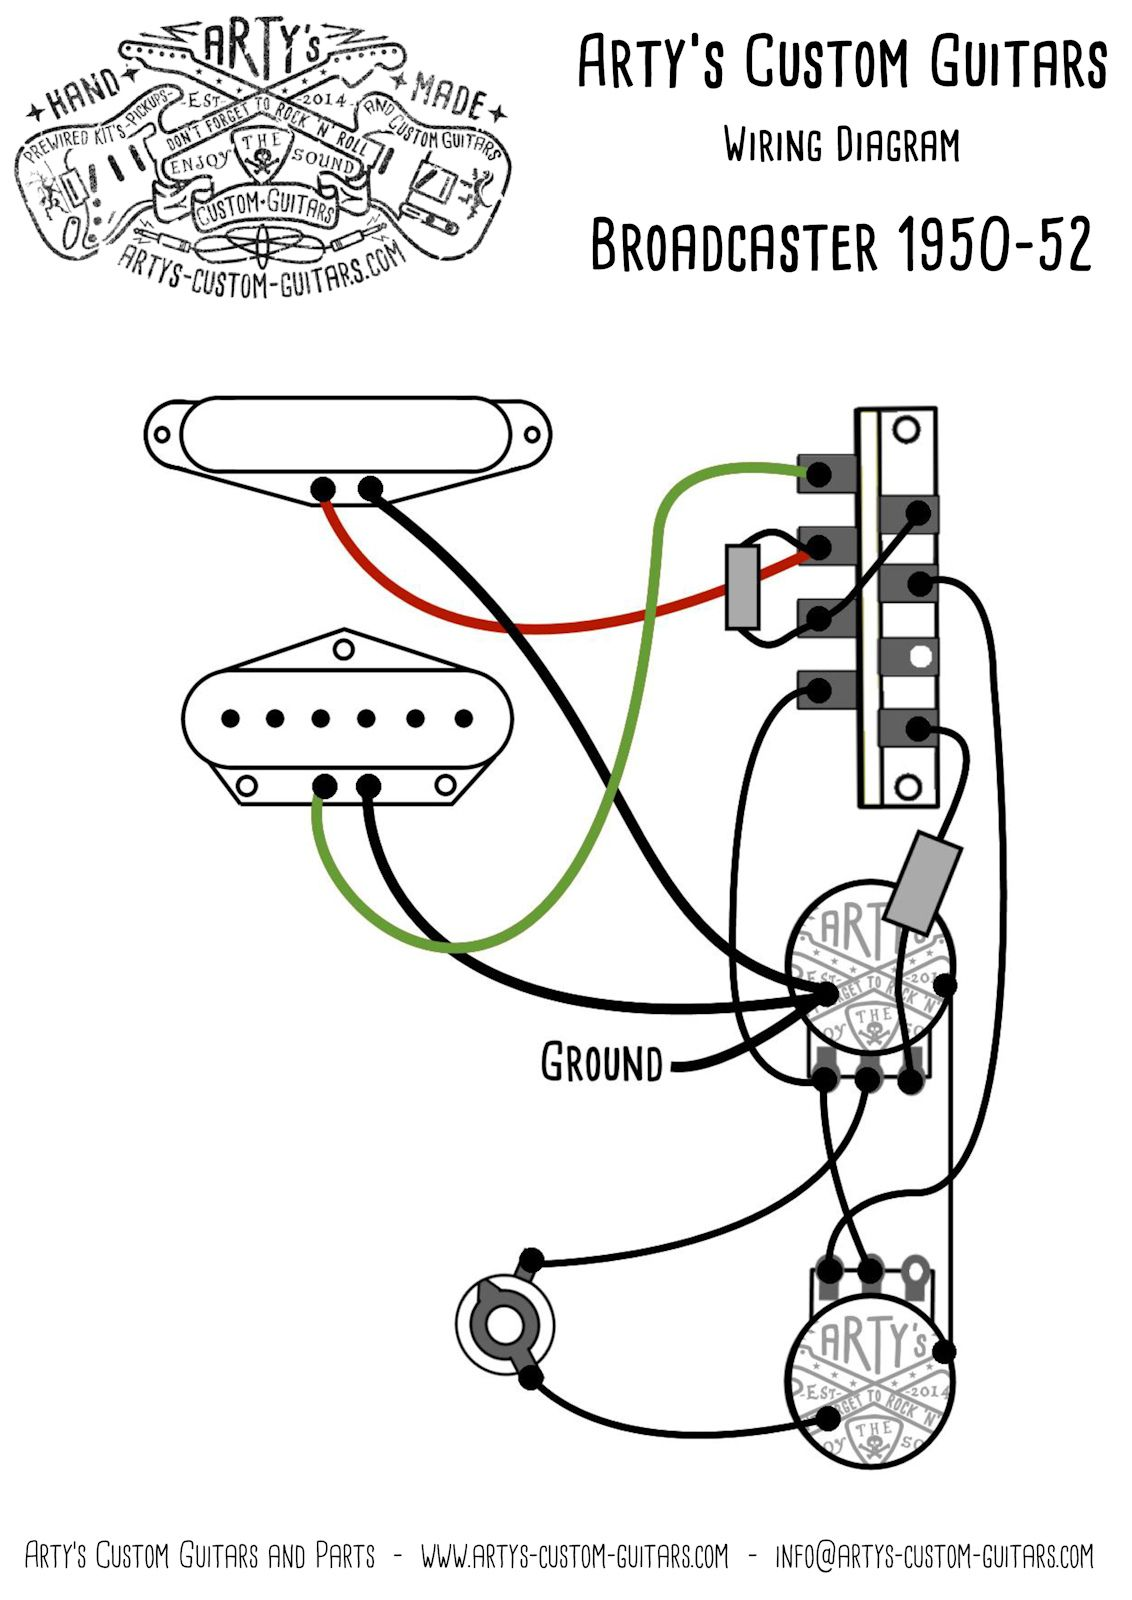 medium resolution of arty s custom guitars broadcaster nocaster 1950 52 vintage pre wired vintage telecaster wiring harness kit